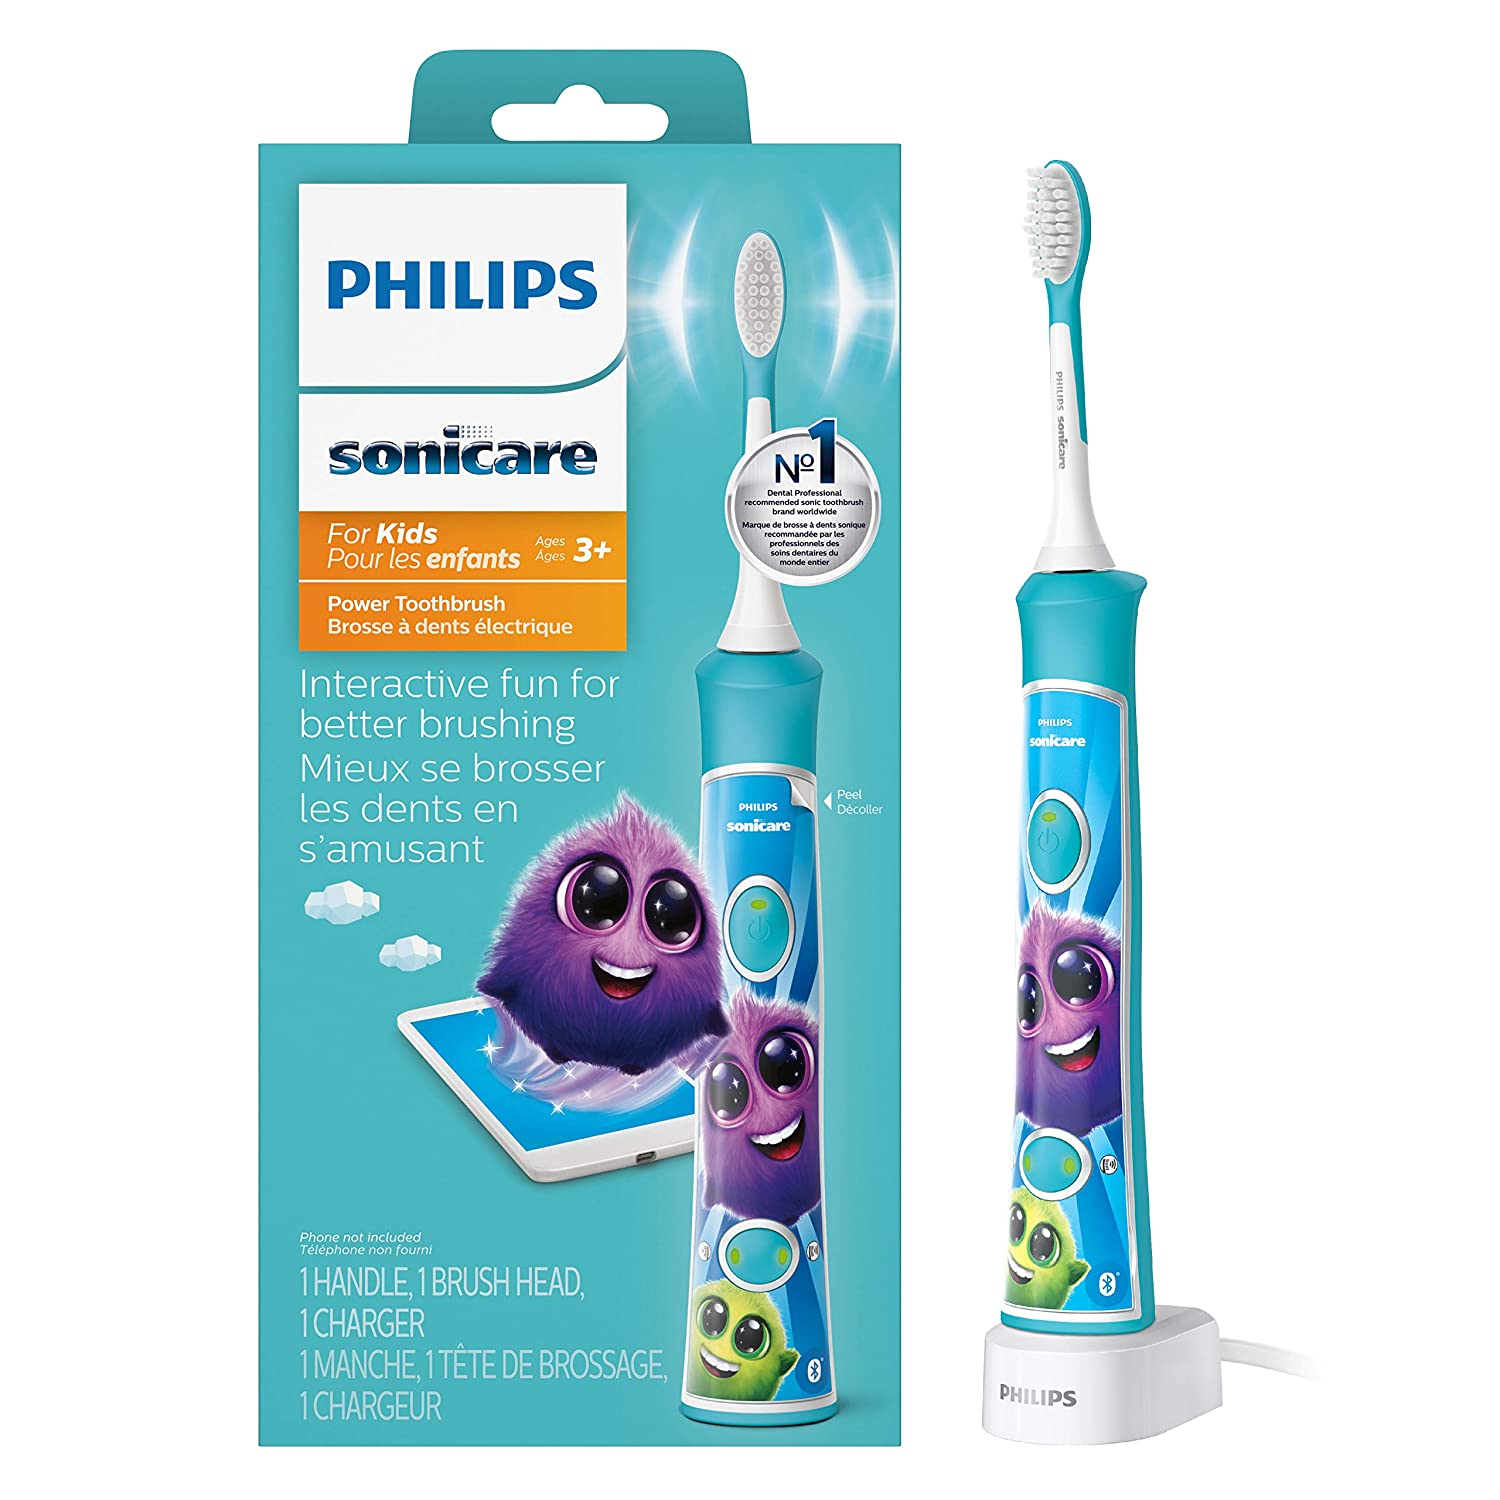 Top 8 Best Electric Toothbrush for Kids (2020 Reviews & Buying Guide) 9